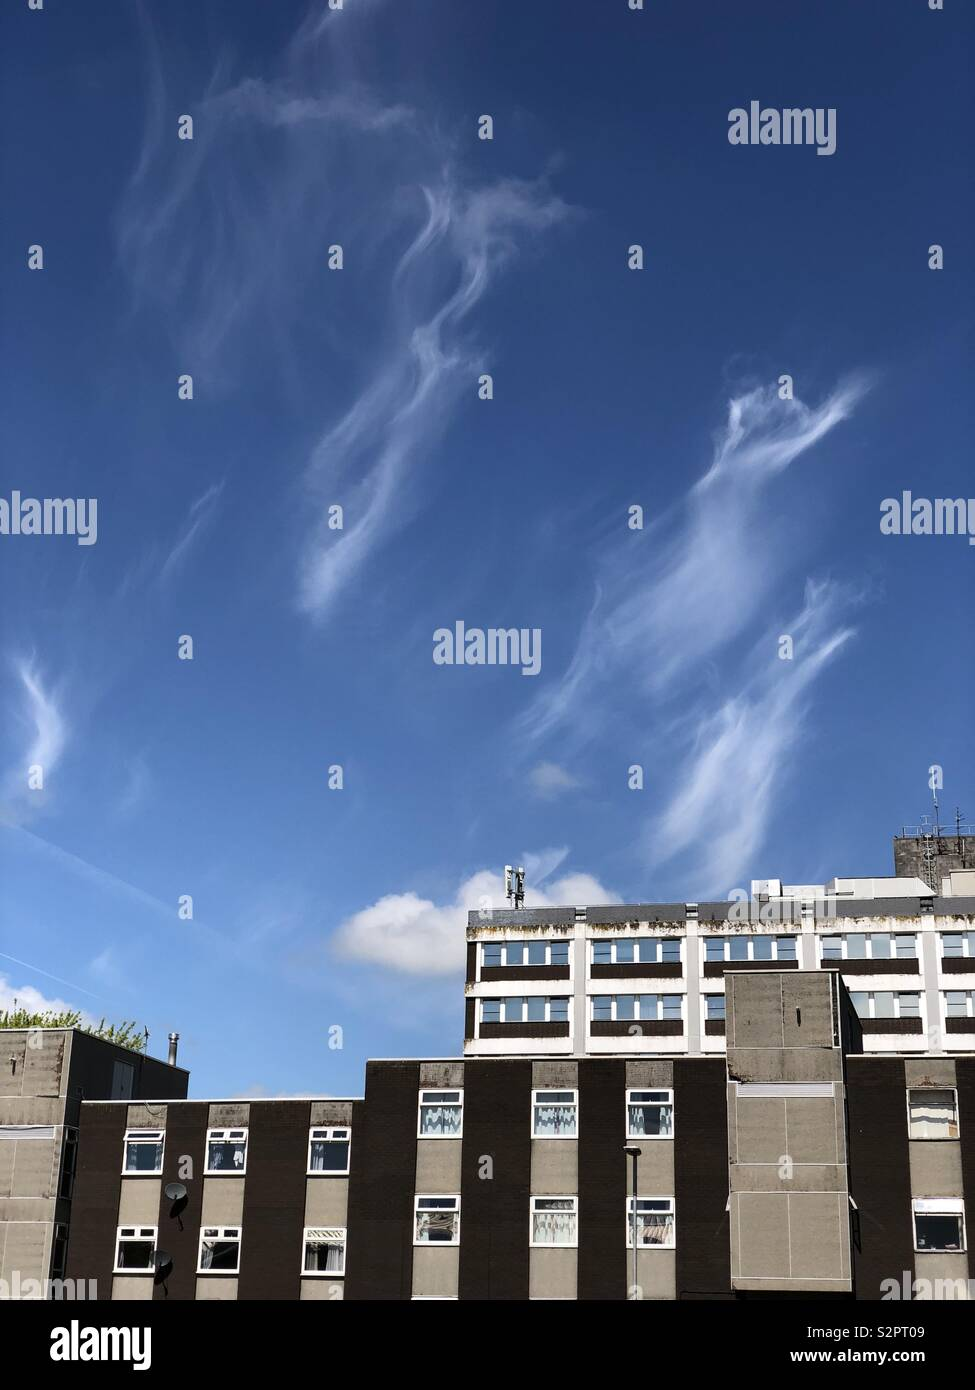 Angels leaving hospital. - Stock Image